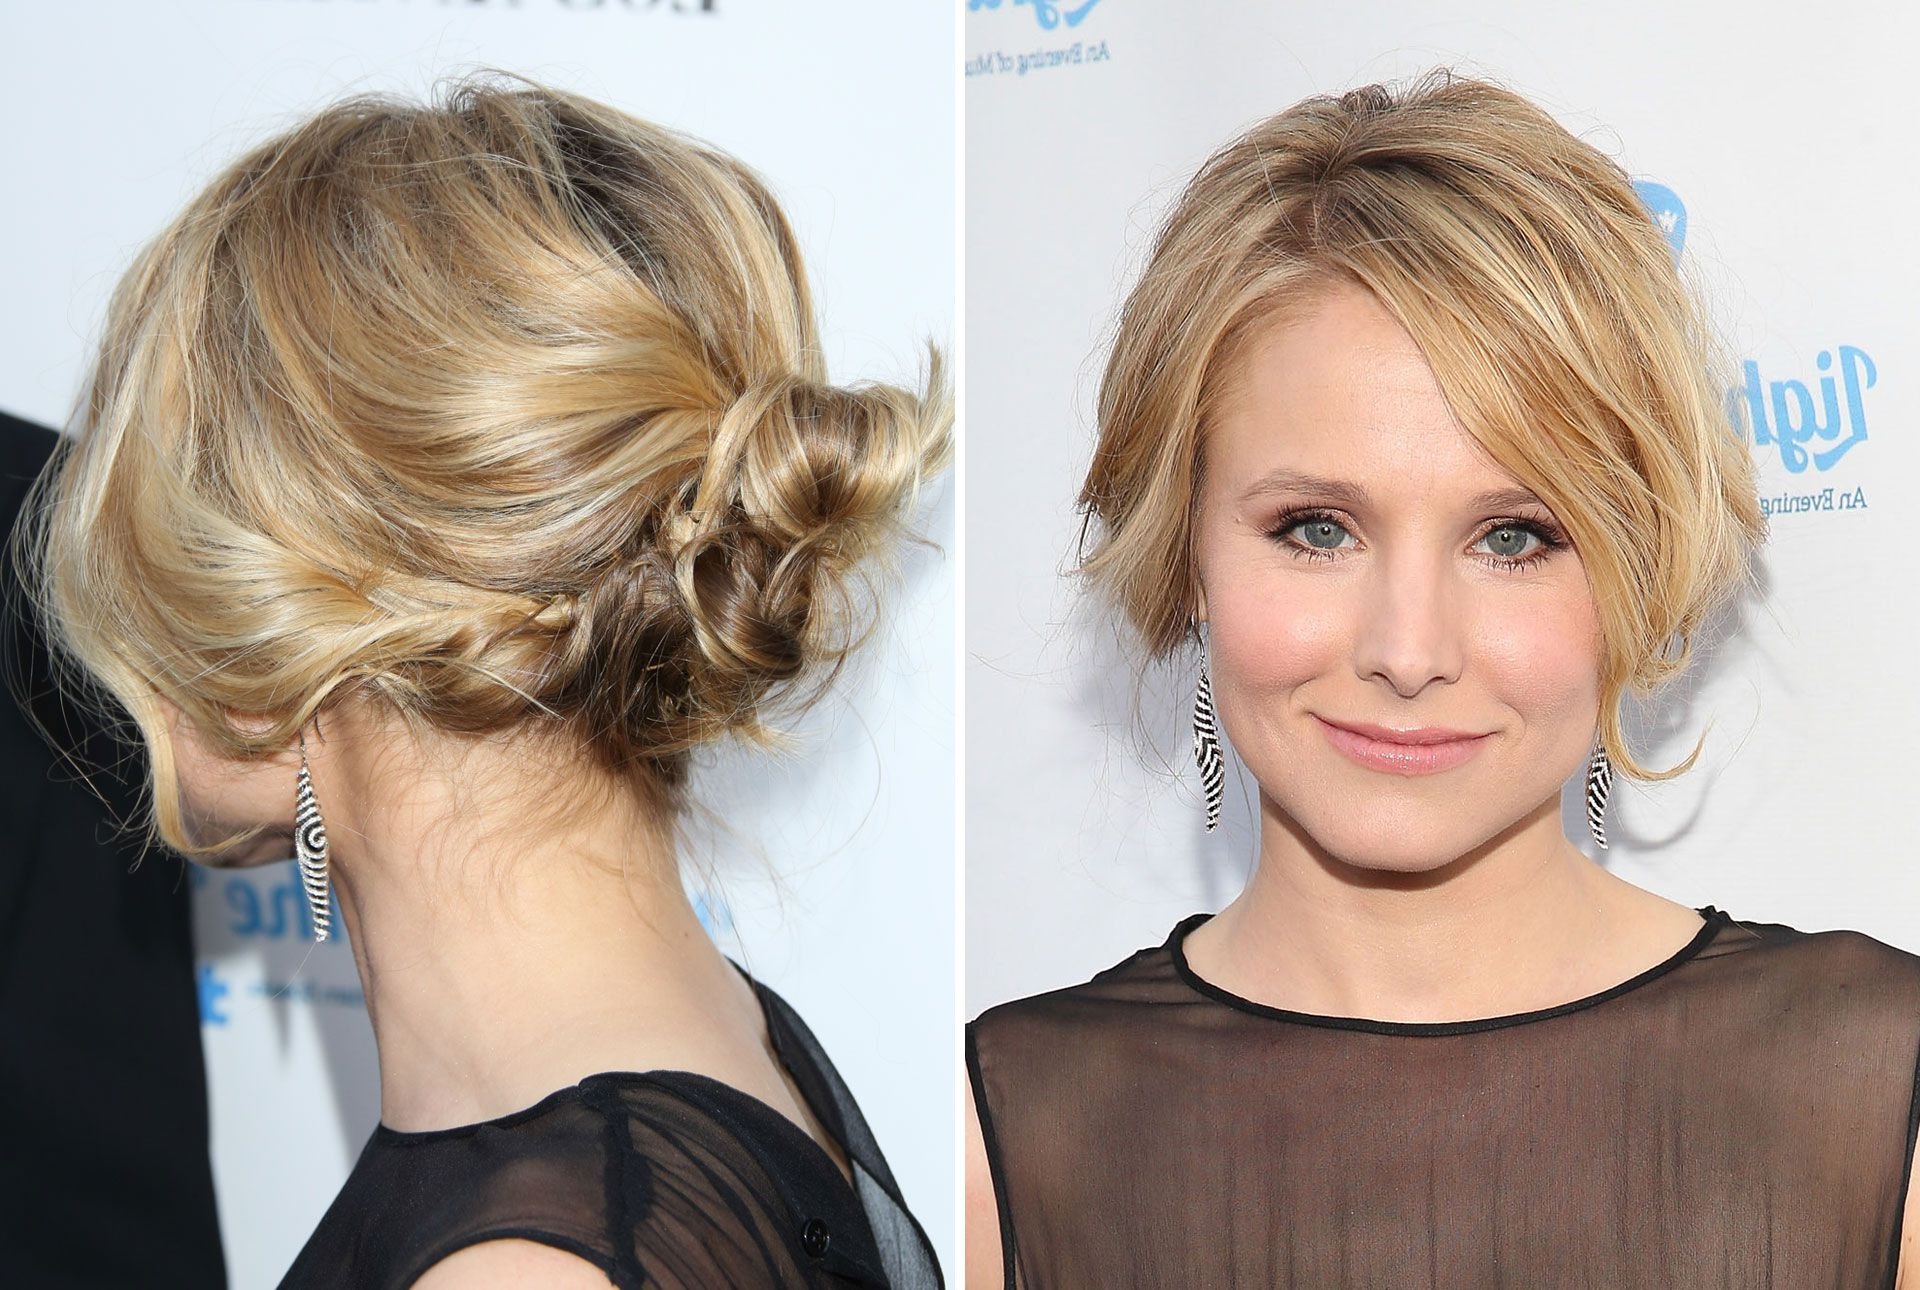 20 Easy Wedding Guest Hairstyles – Best Hair Ideas For Wedding Guests In Hairstyles For Short Hair Wedding Guest (View 2 of 25)